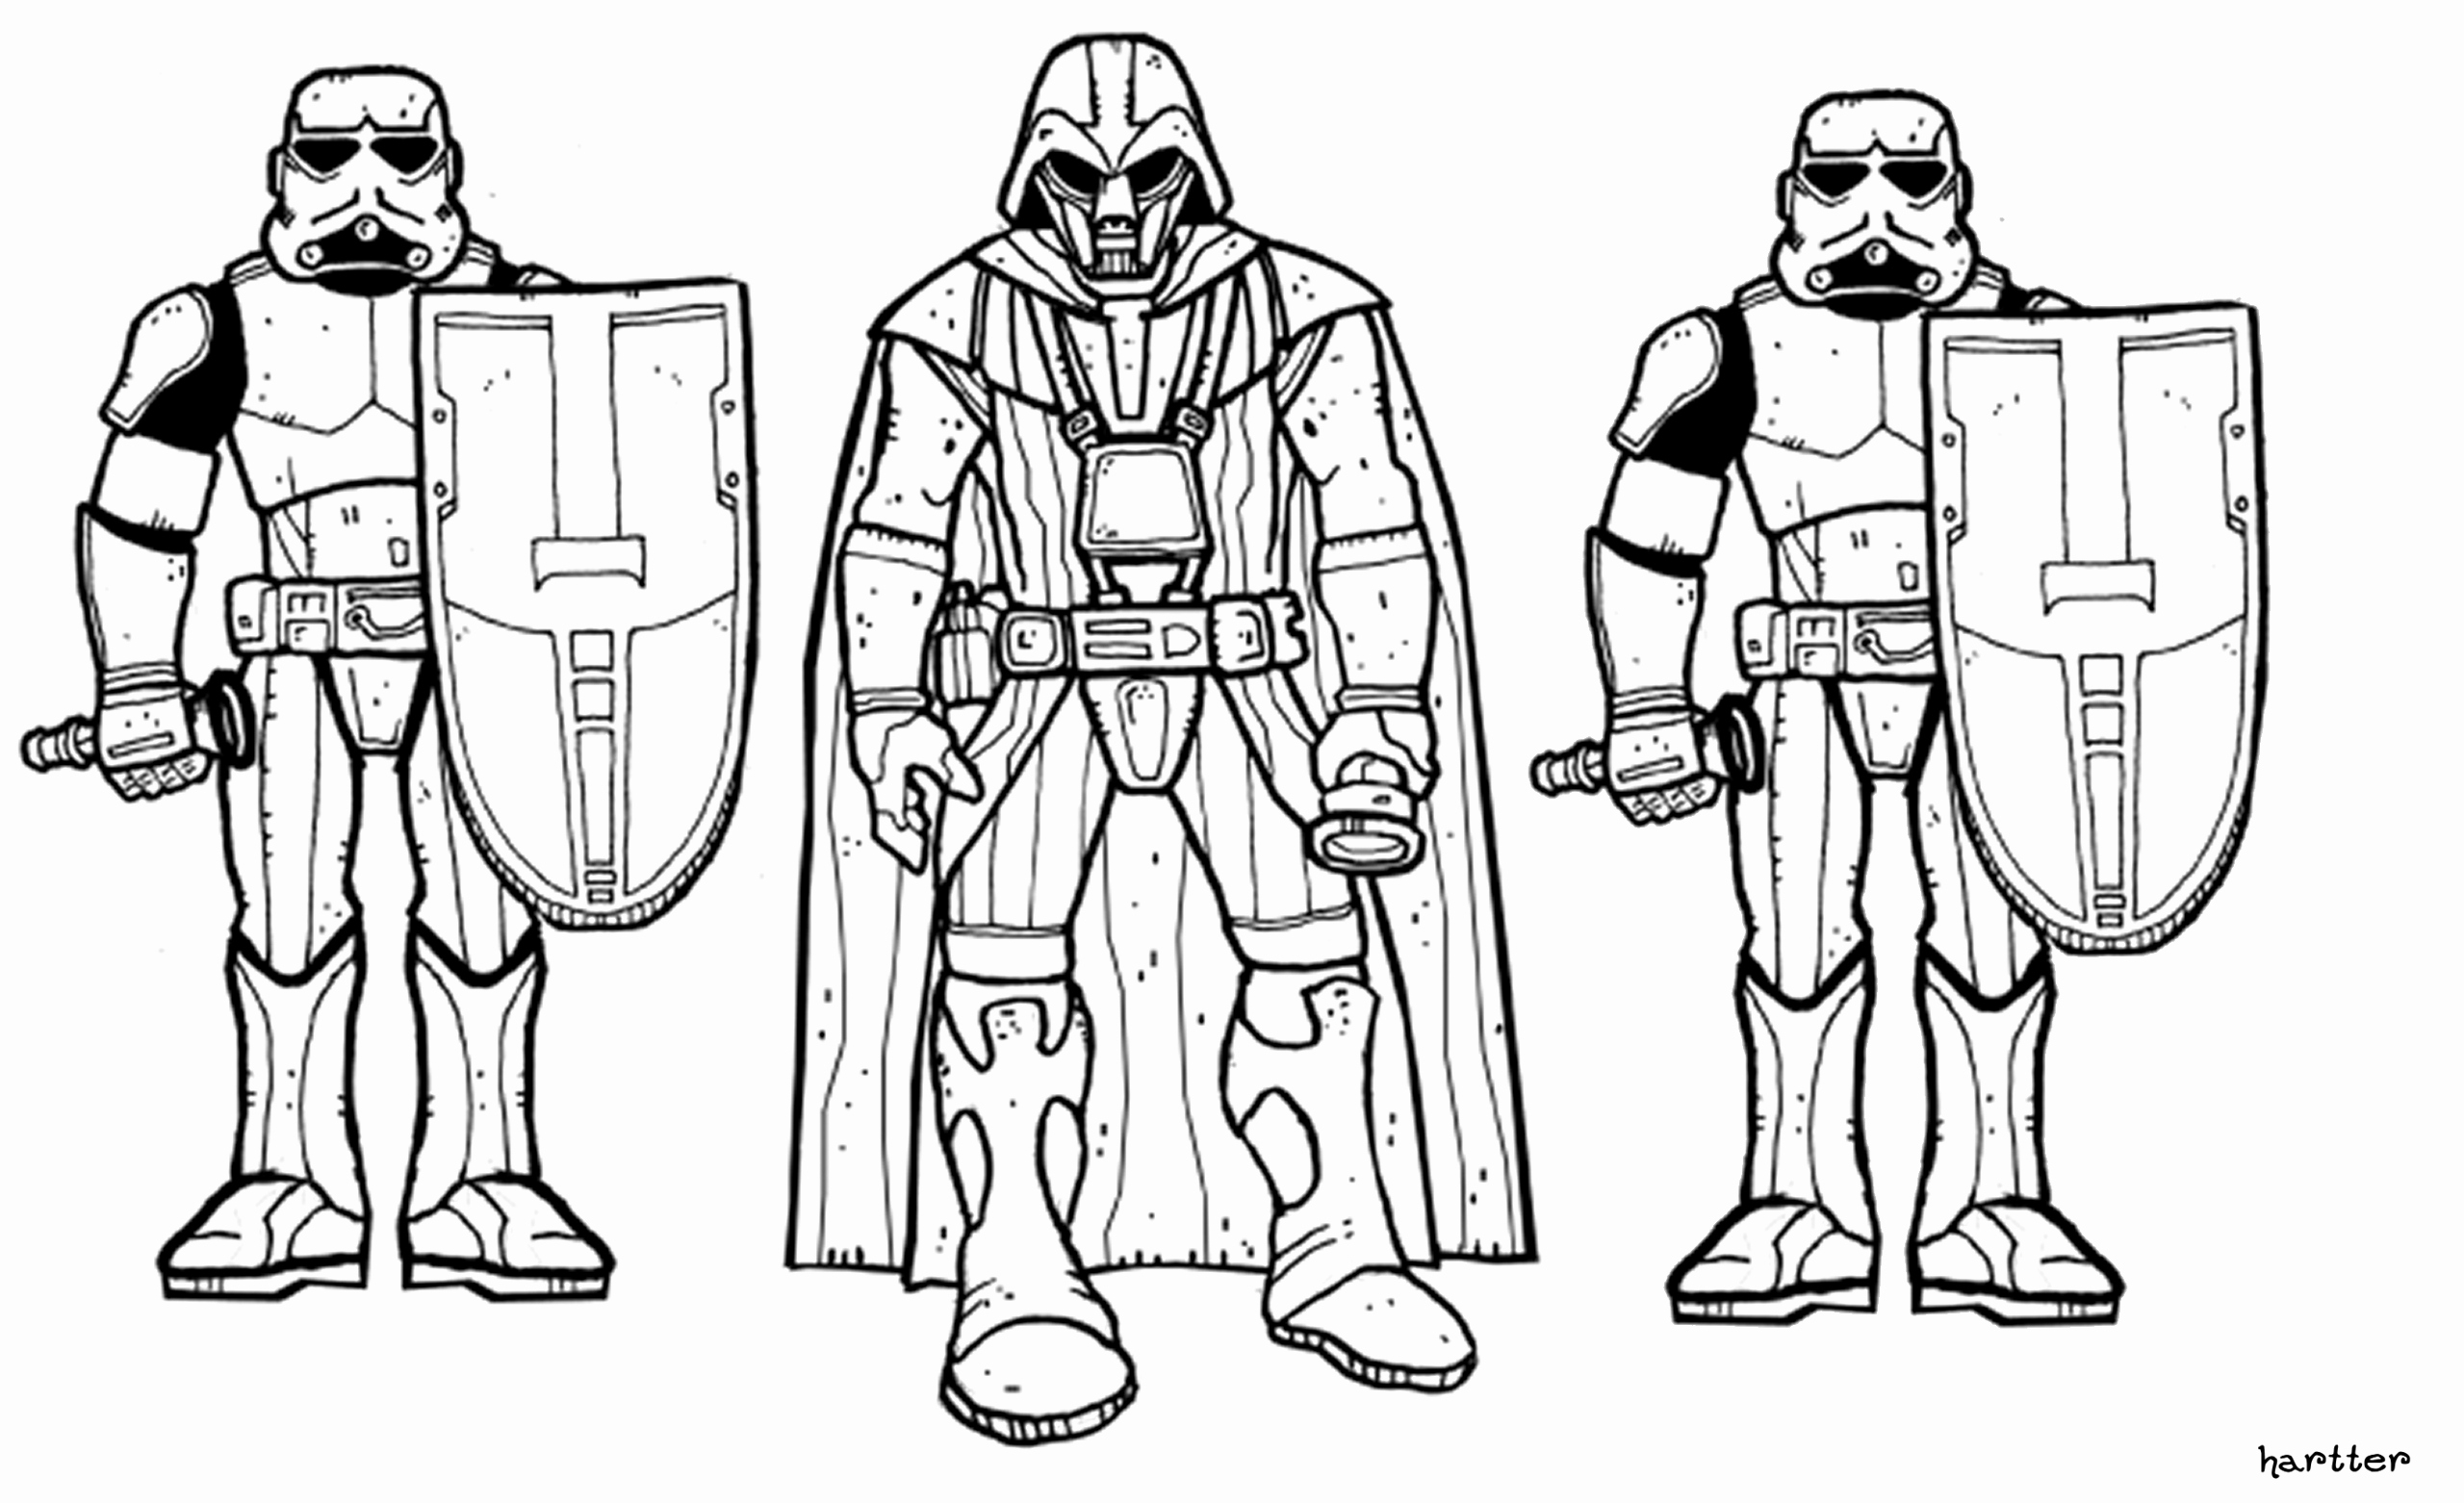 Free Coloring Pages Star Wars the Clone Wars Gallery Coloring to Print Of Fresh Star Wars Coloring Pages to Print